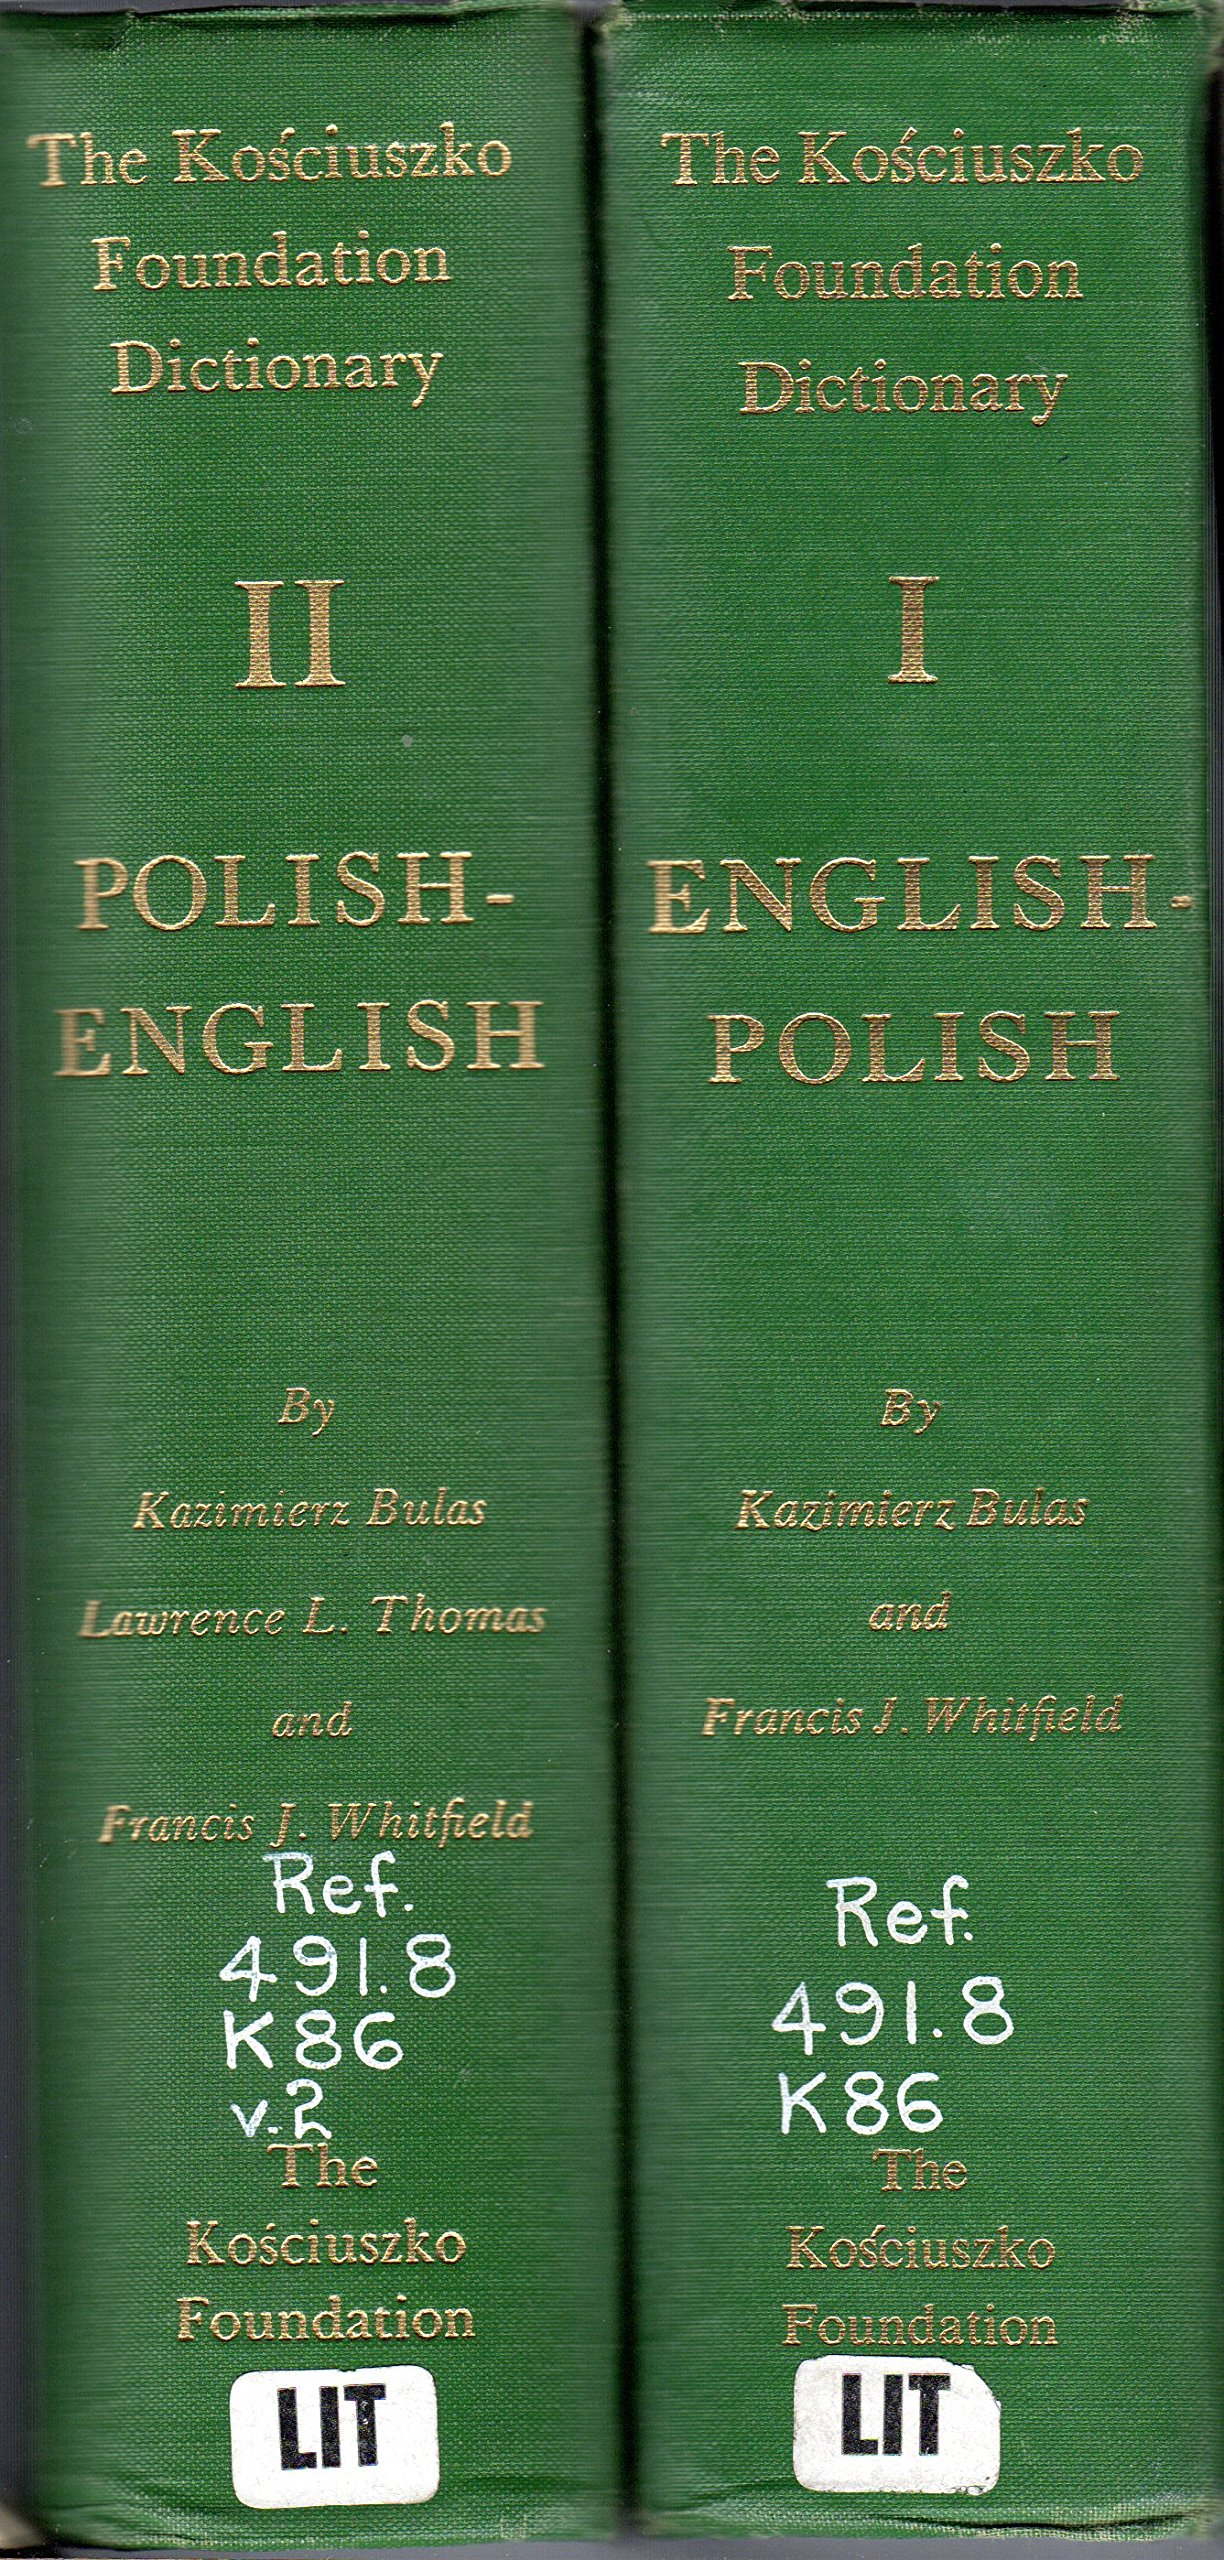 The Kosciuszko Foundation Dictionary: English-Polish, Polish